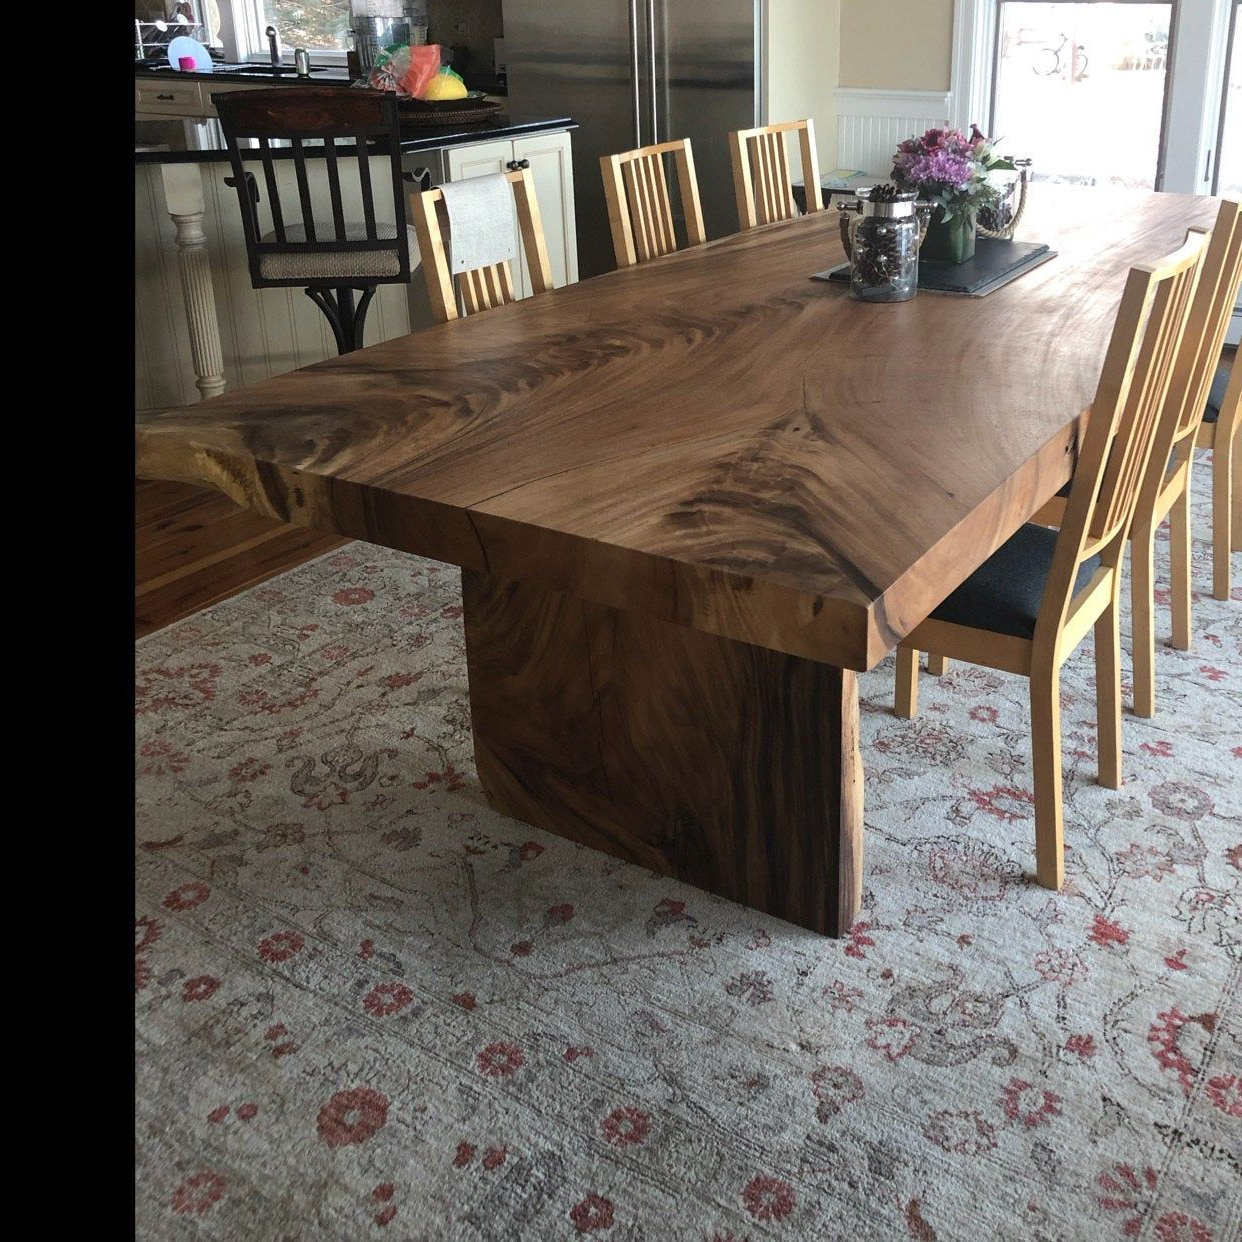 Preferred Live Edge Dining Tables, Acacia Curved Slabs, Live Edge Pertaining To Unique Acacia Wood Dining Tables (View 12 of 30)